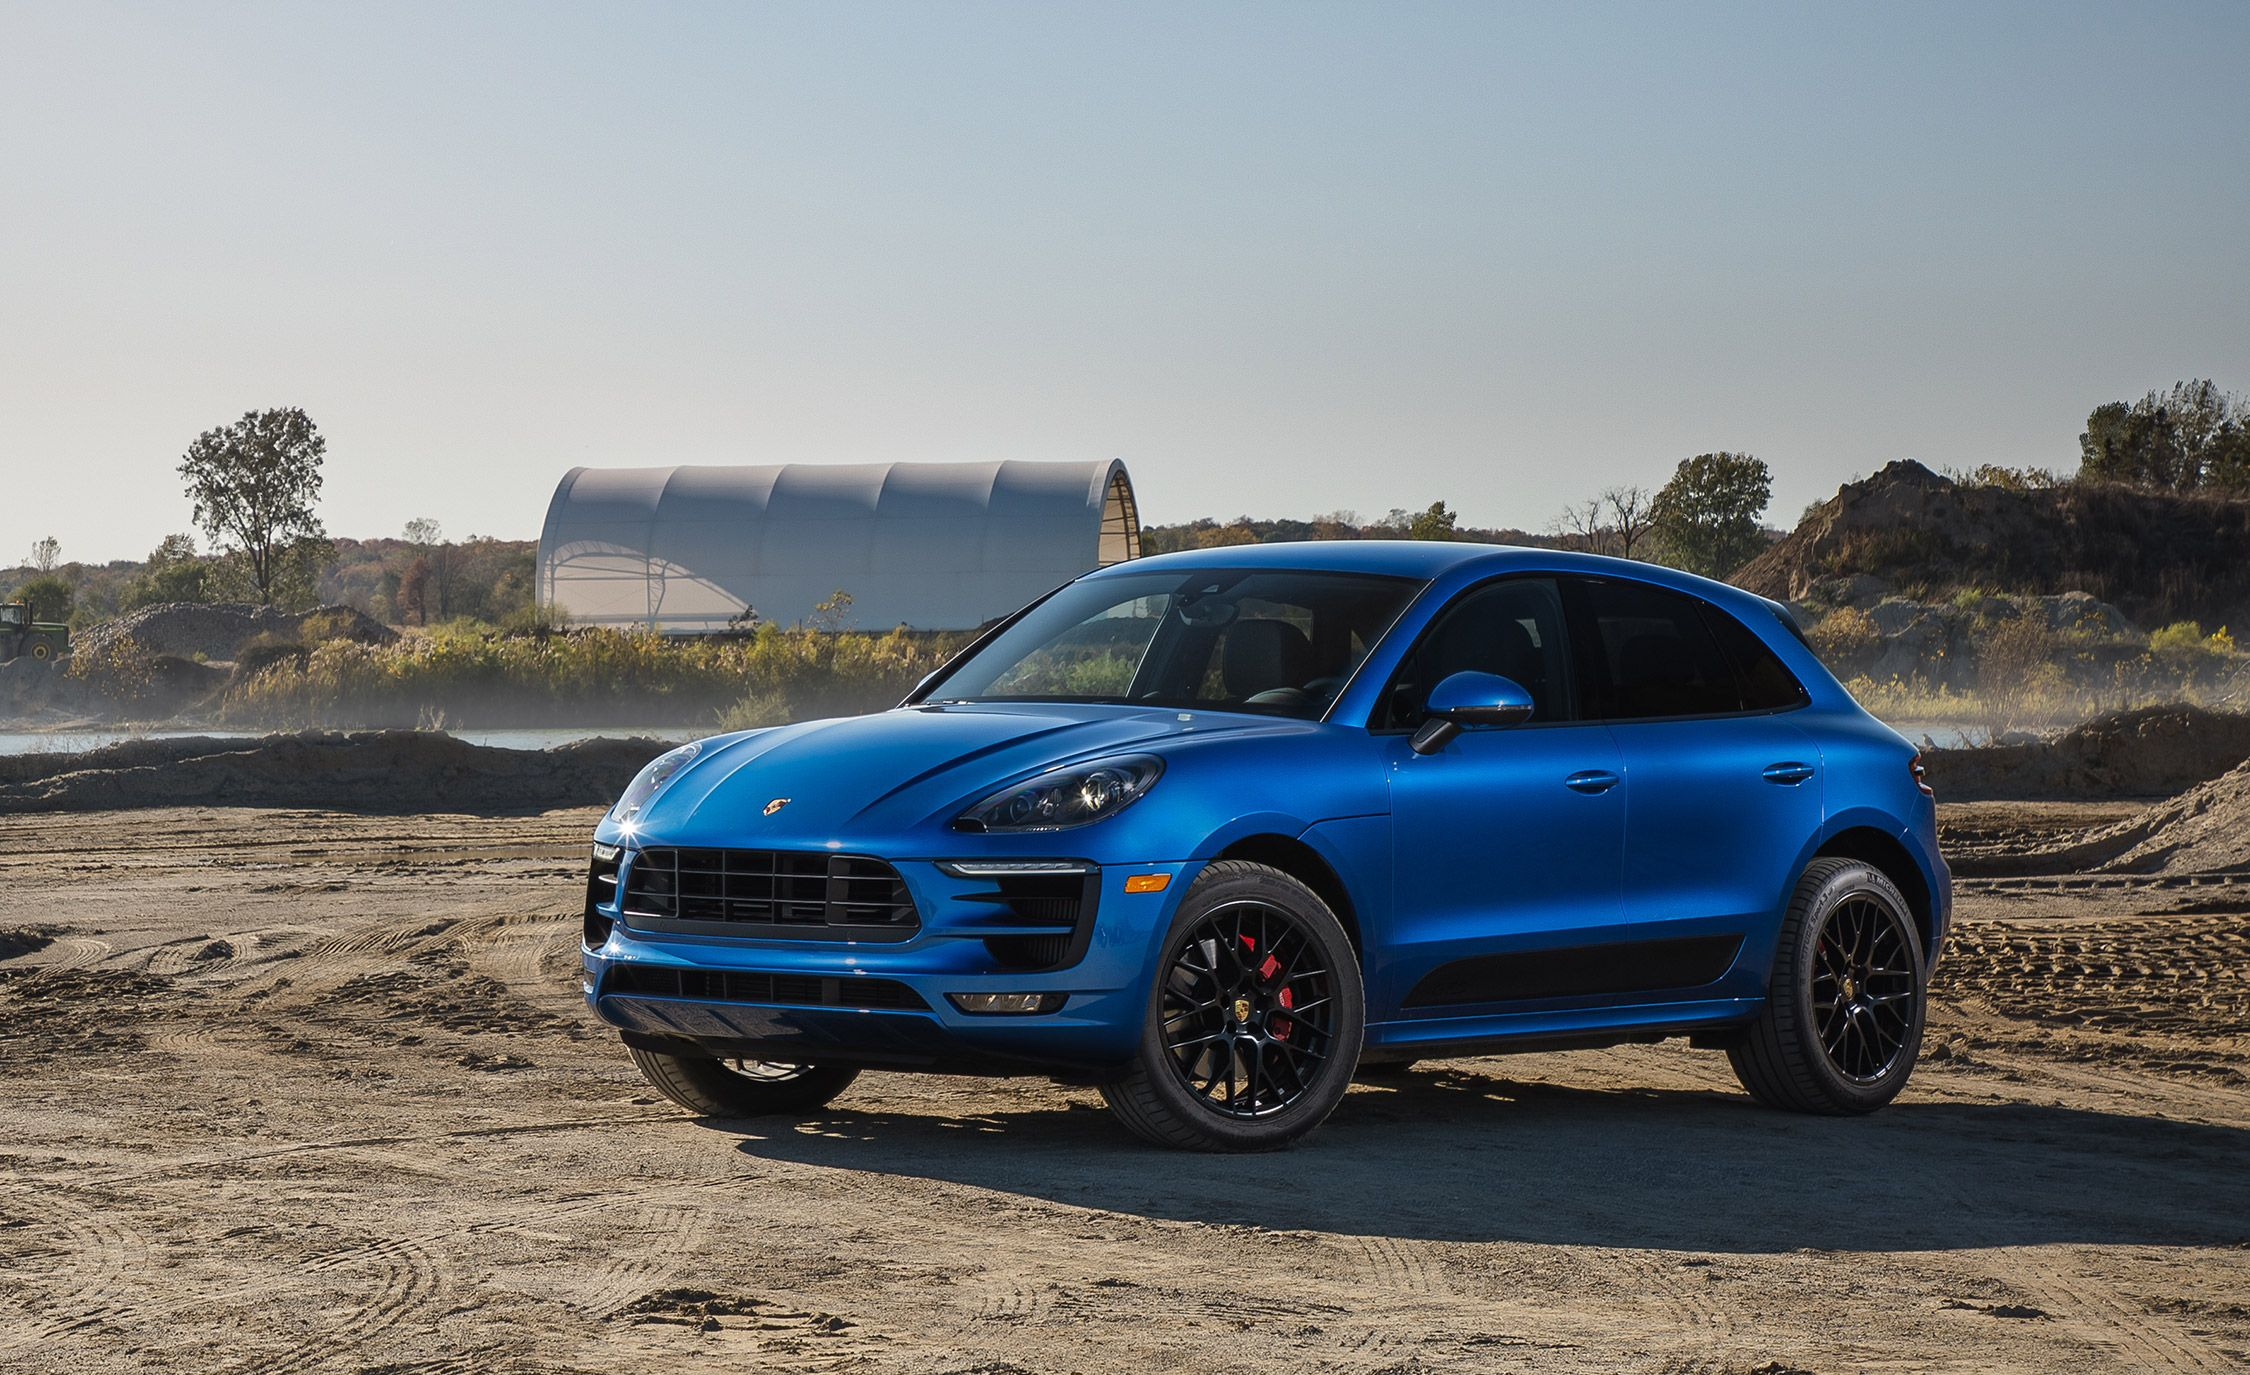 Porsche Macan S Gts Turbo Best Compact Luxury Suv